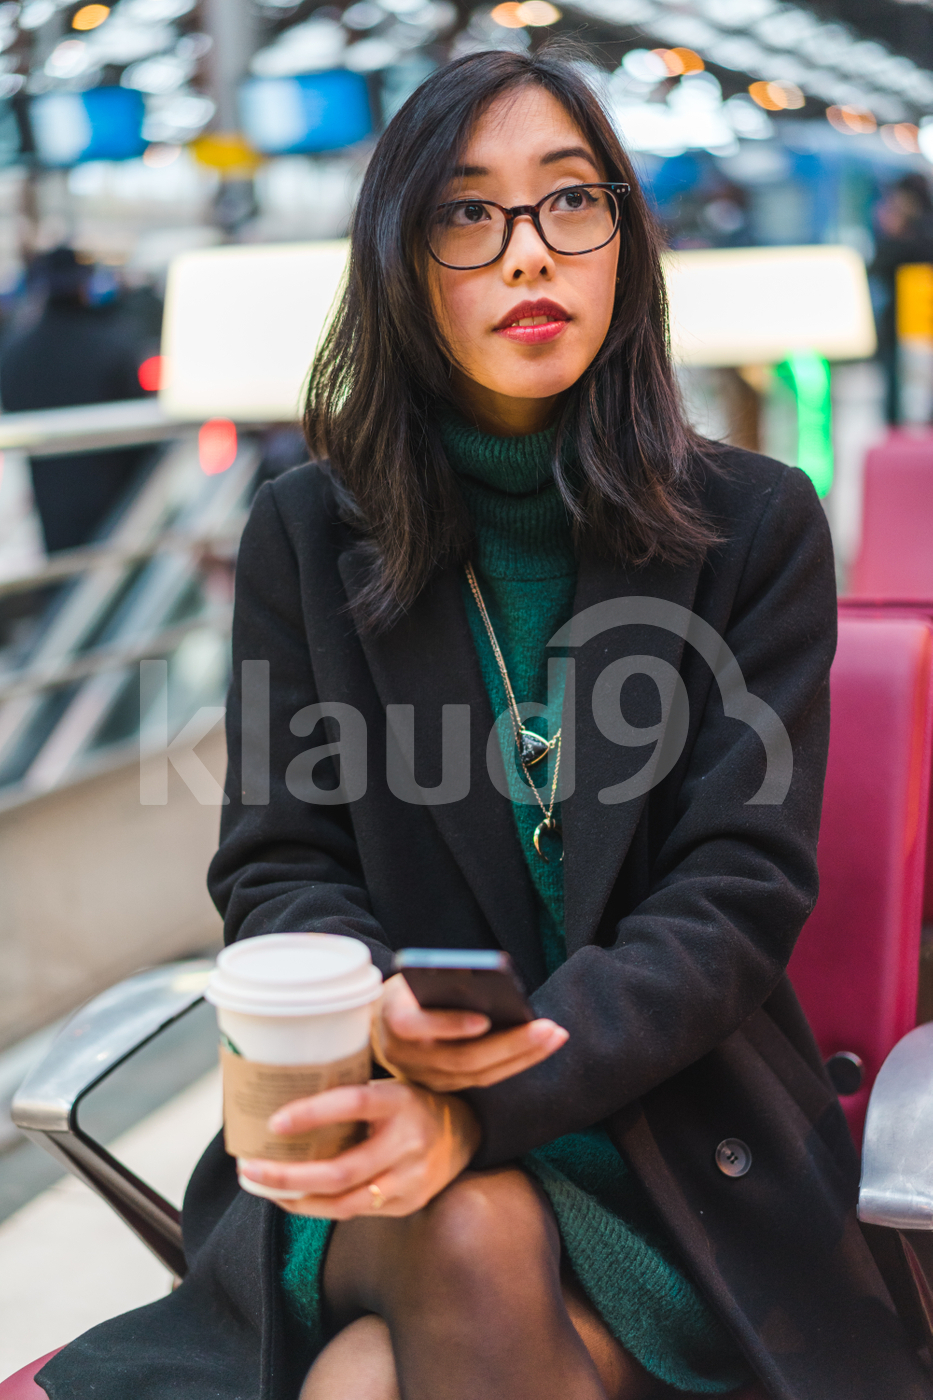 Young Asian woman sitting in a train station holding a coffee cup